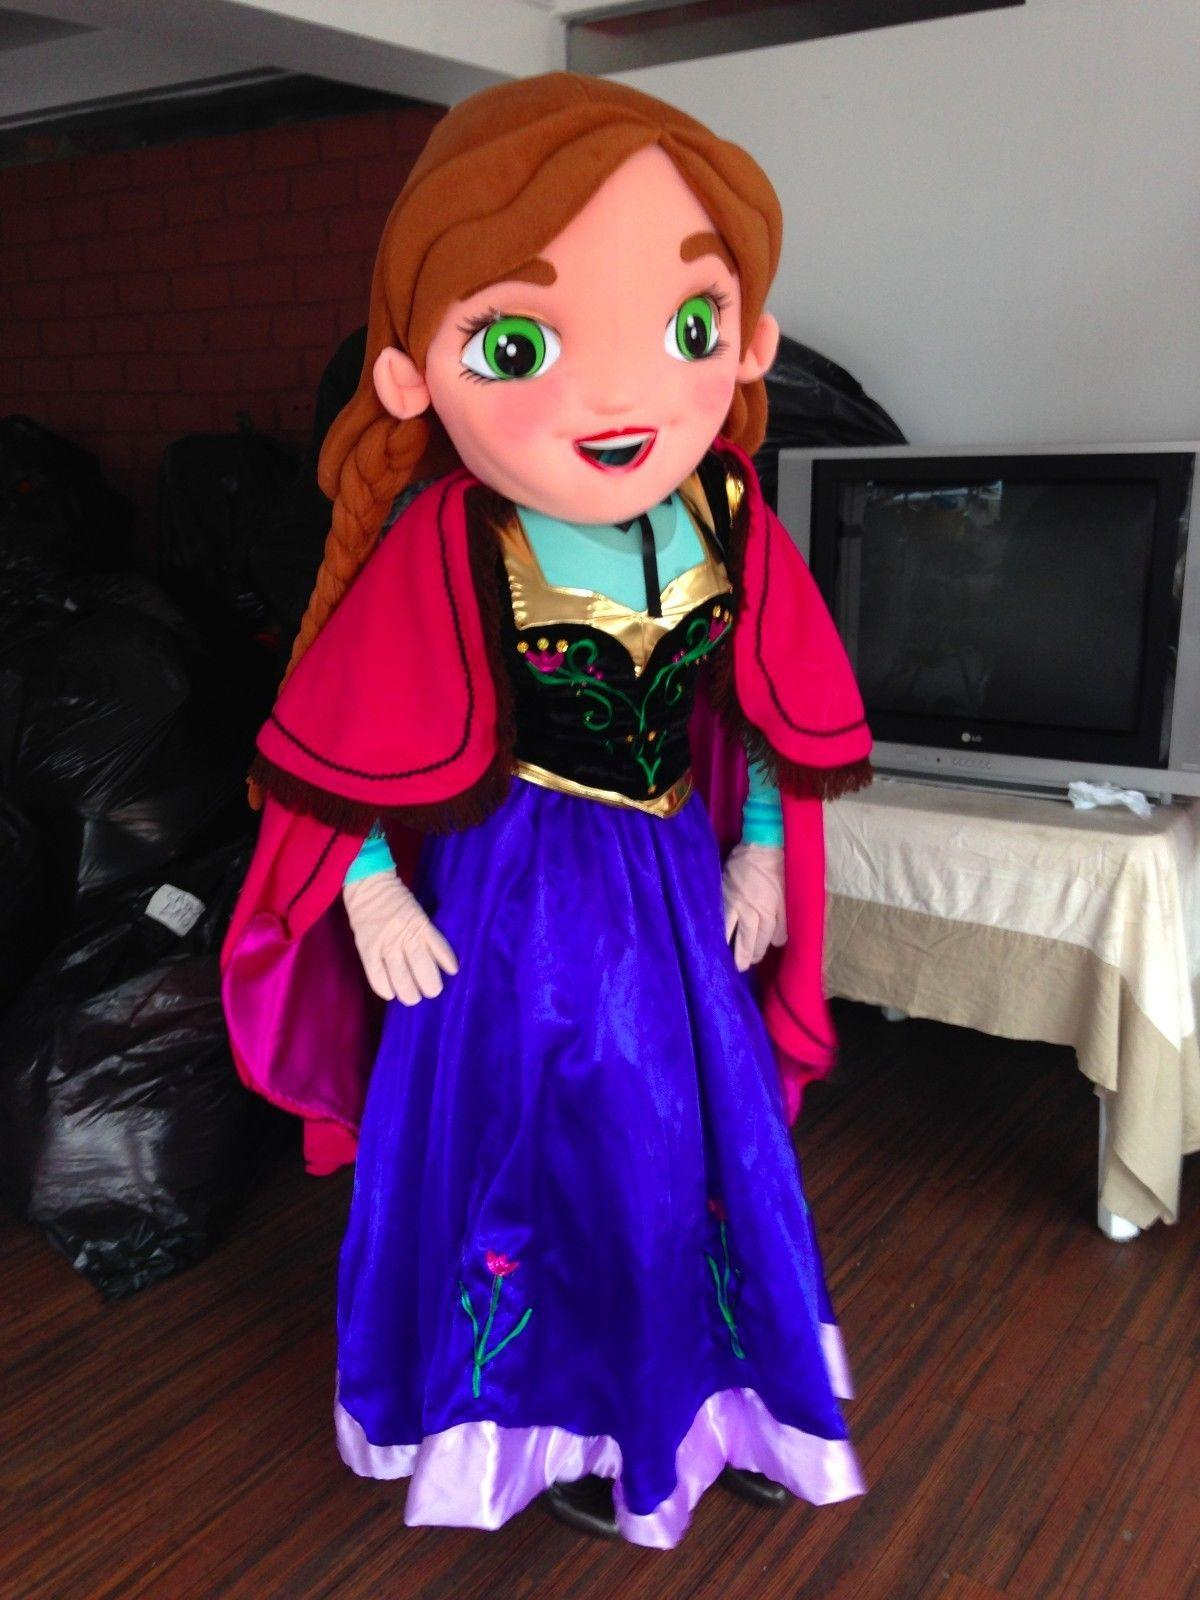 New Special Anna Frozen Mascot Costume Elsa Olaf Figure Ice Character Cartoon Fancy Dress Mho Mascot Character Buy Mascot Costumes From Excellentservice ... & New Special Anna Frozen Mascot Costume Elsa Olaf Figure Ice ...